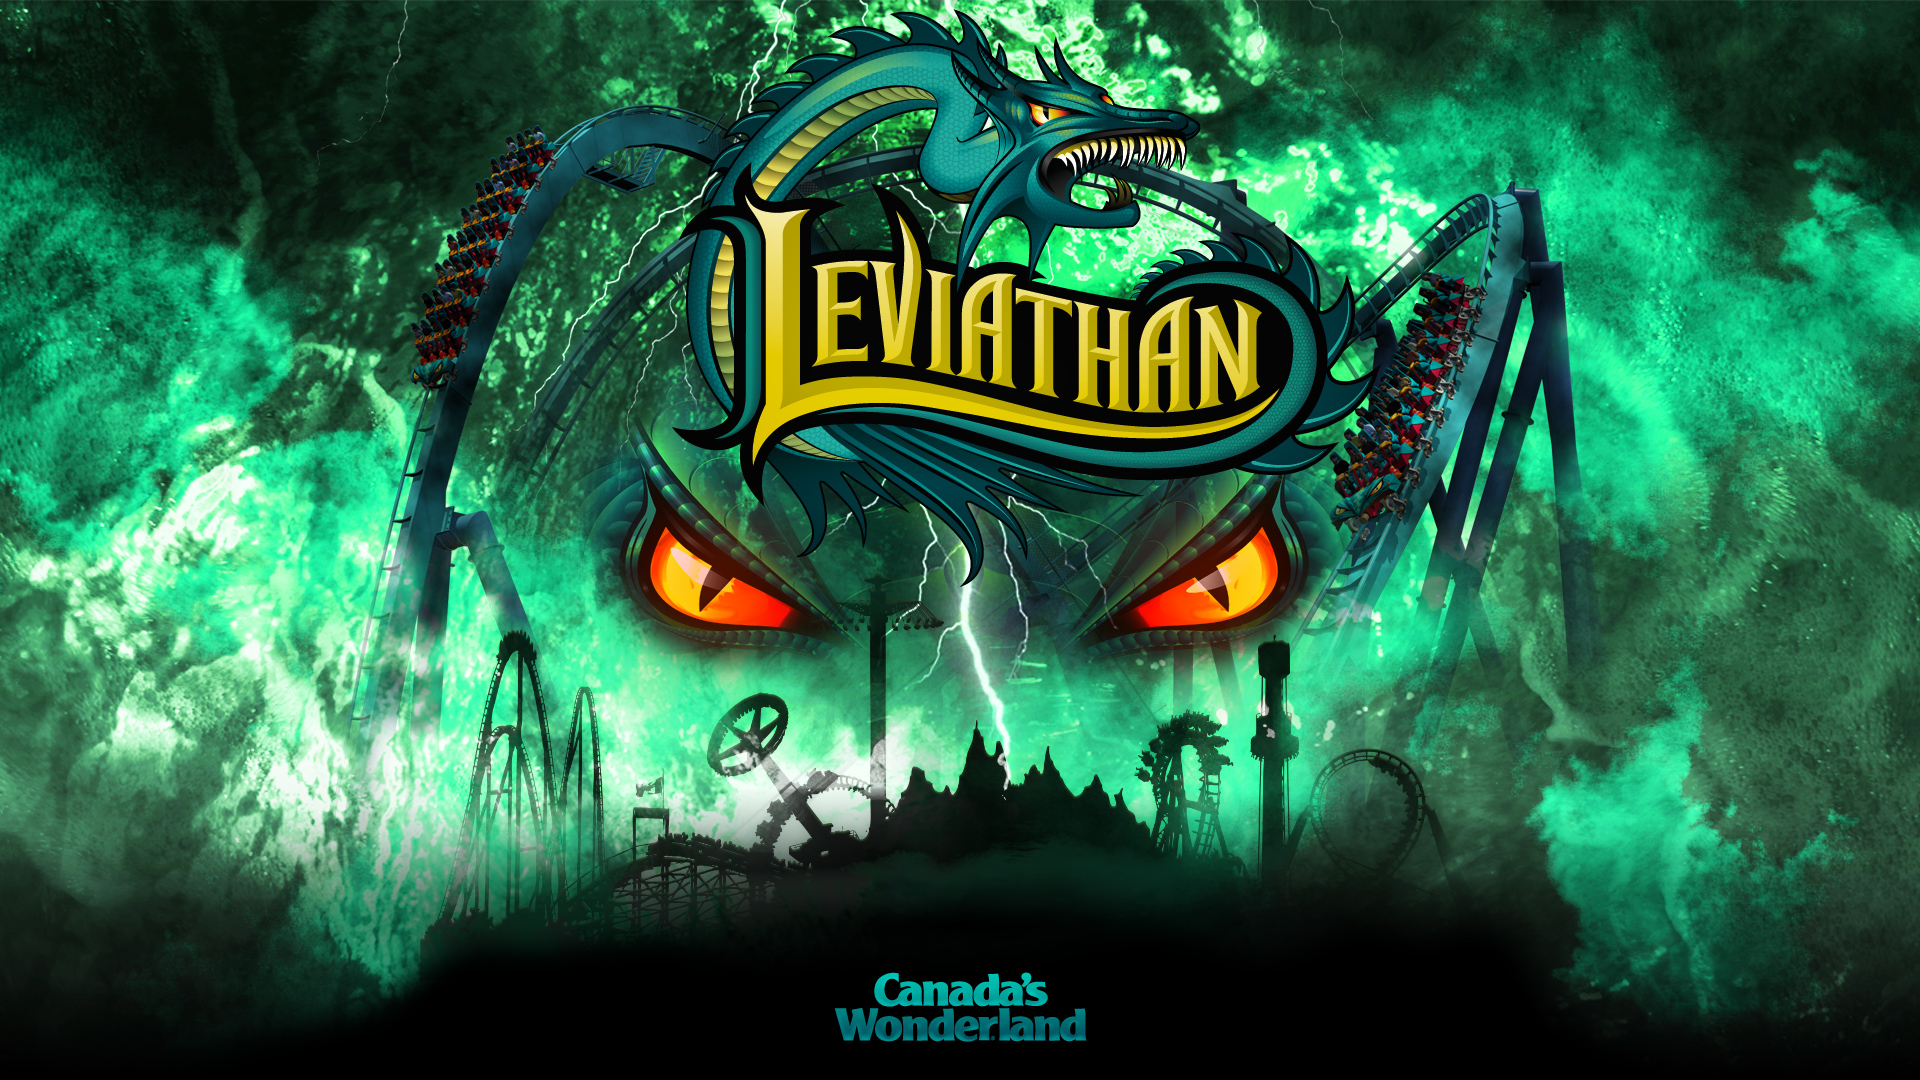 Leviathan Logo at Canada's Wonderland Desktop Wallpaper